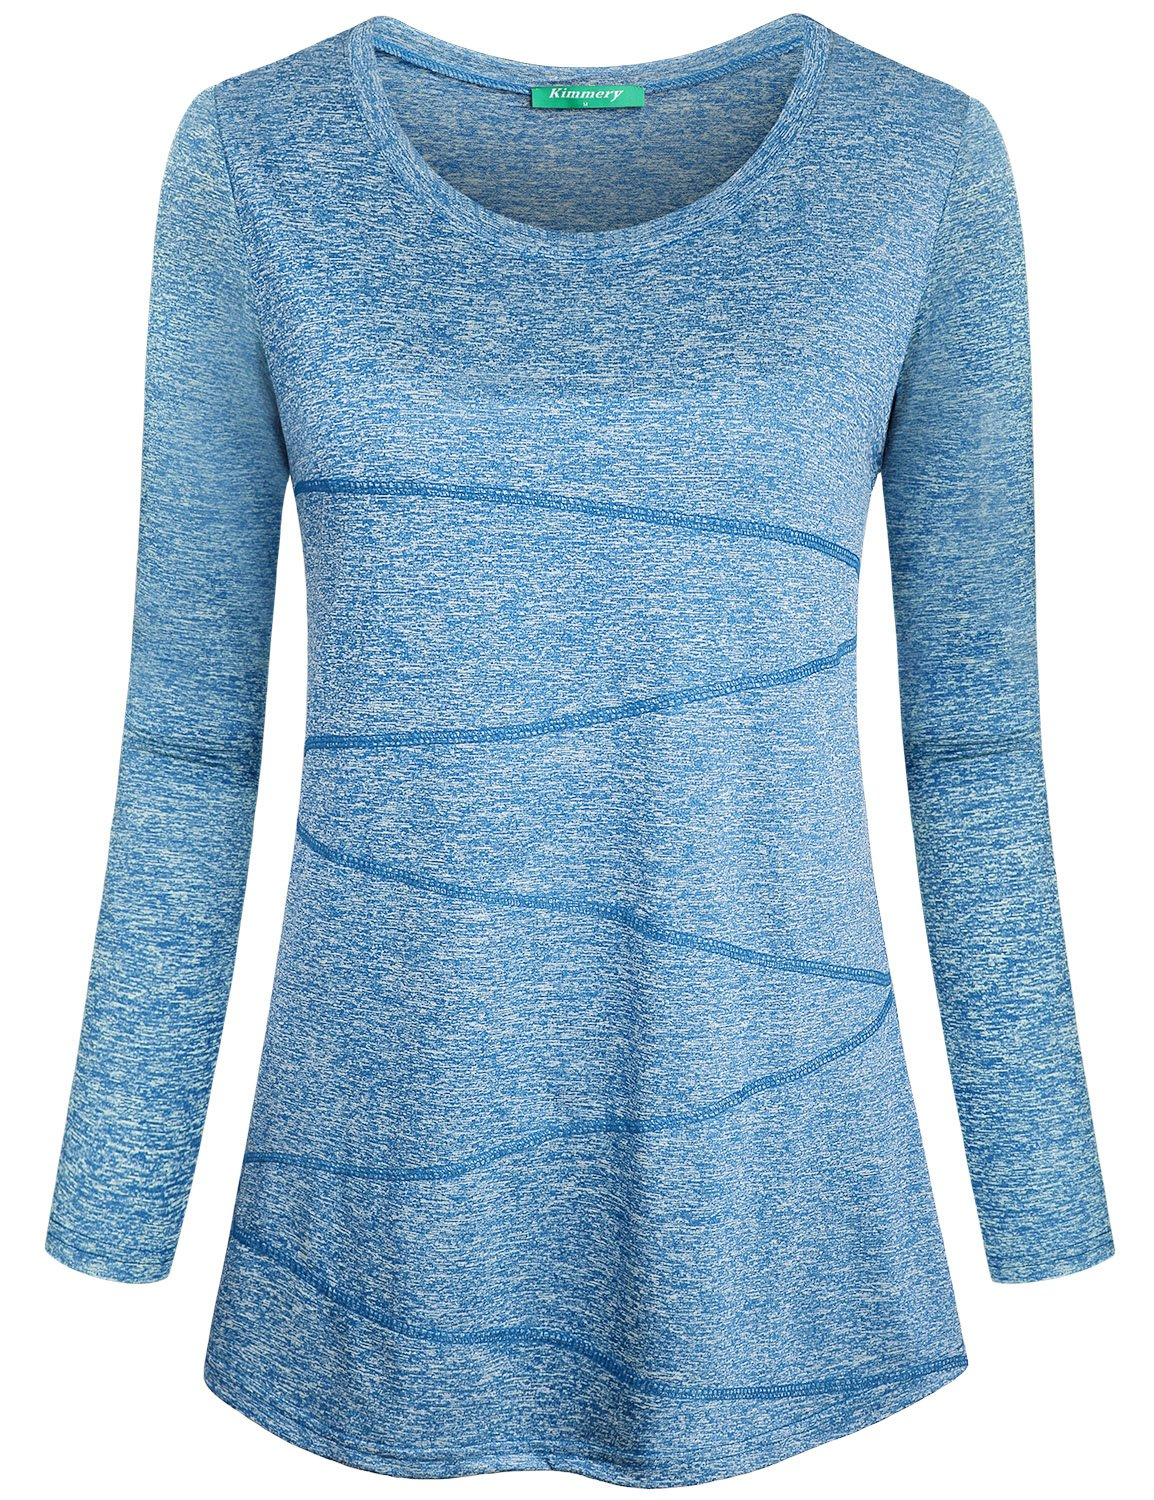 Kimmery Yoga Tunic, Running Tops for Women Long Sleeve Scoop Collar Space Dye Pilates Shirts Pullover Style Ladies Exercise Casual Clothes Light Blue Medium by Kimmery